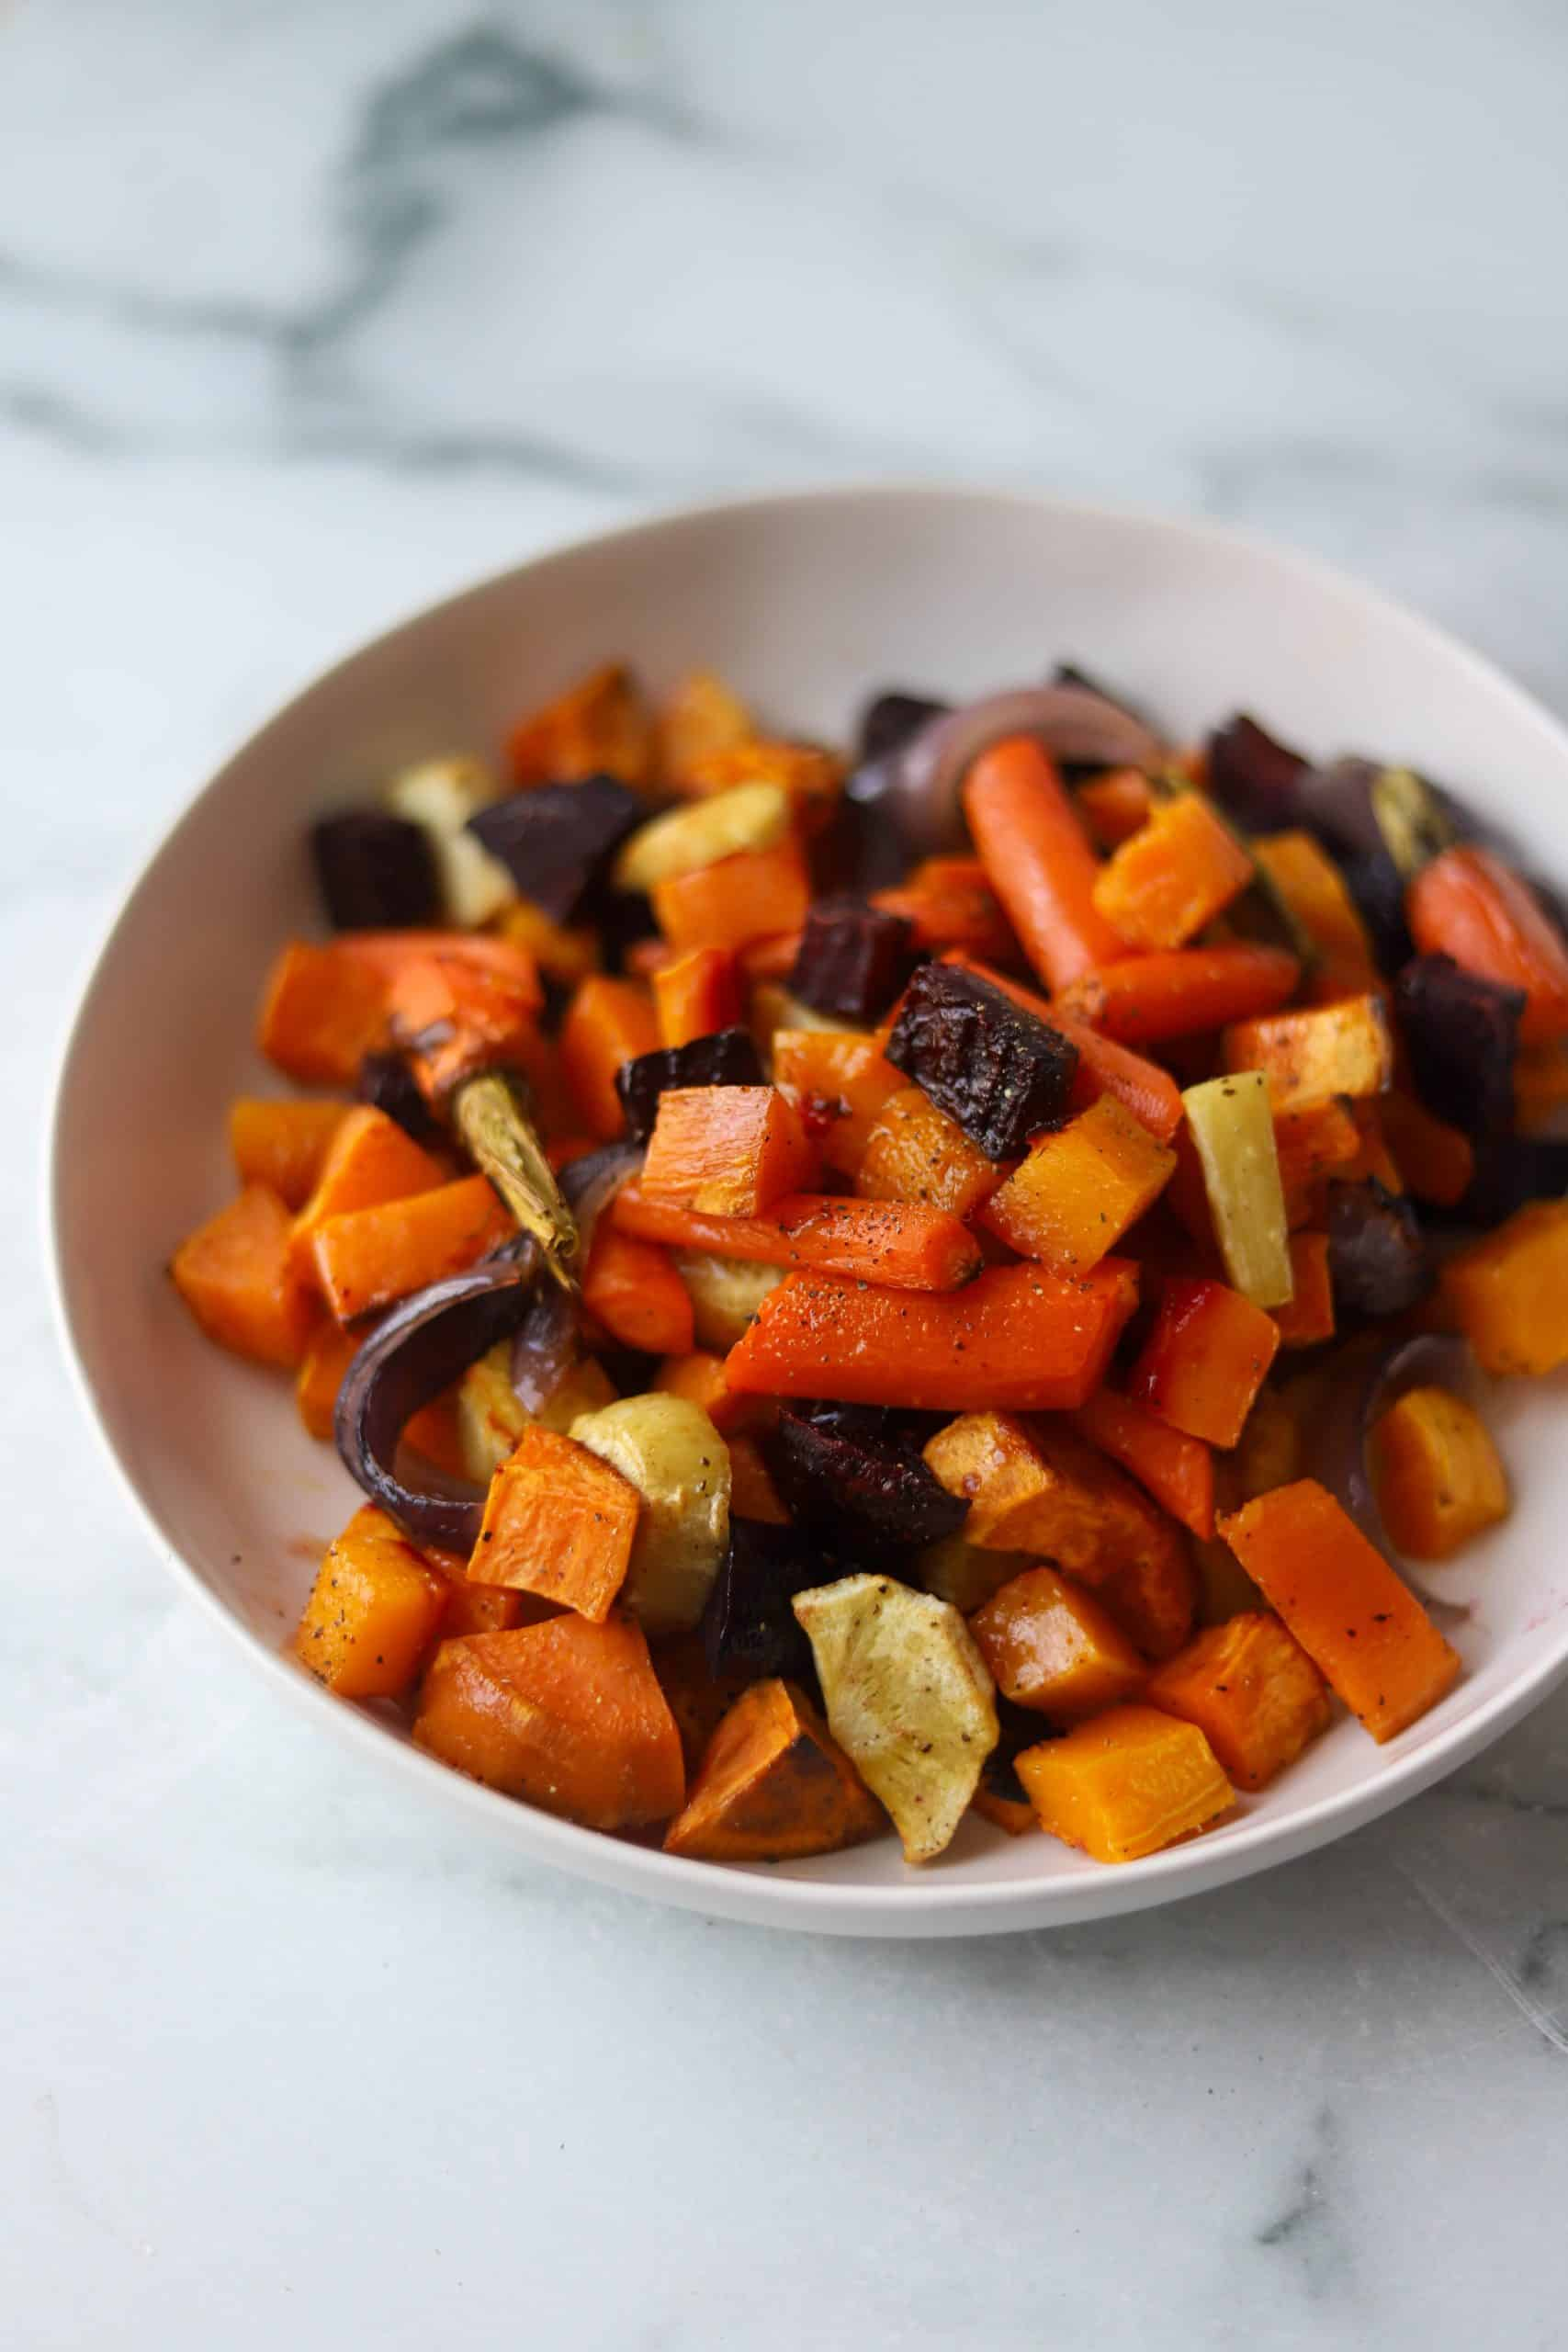 Side angle shot of roasted vegetables piled on each other in a white bowl.